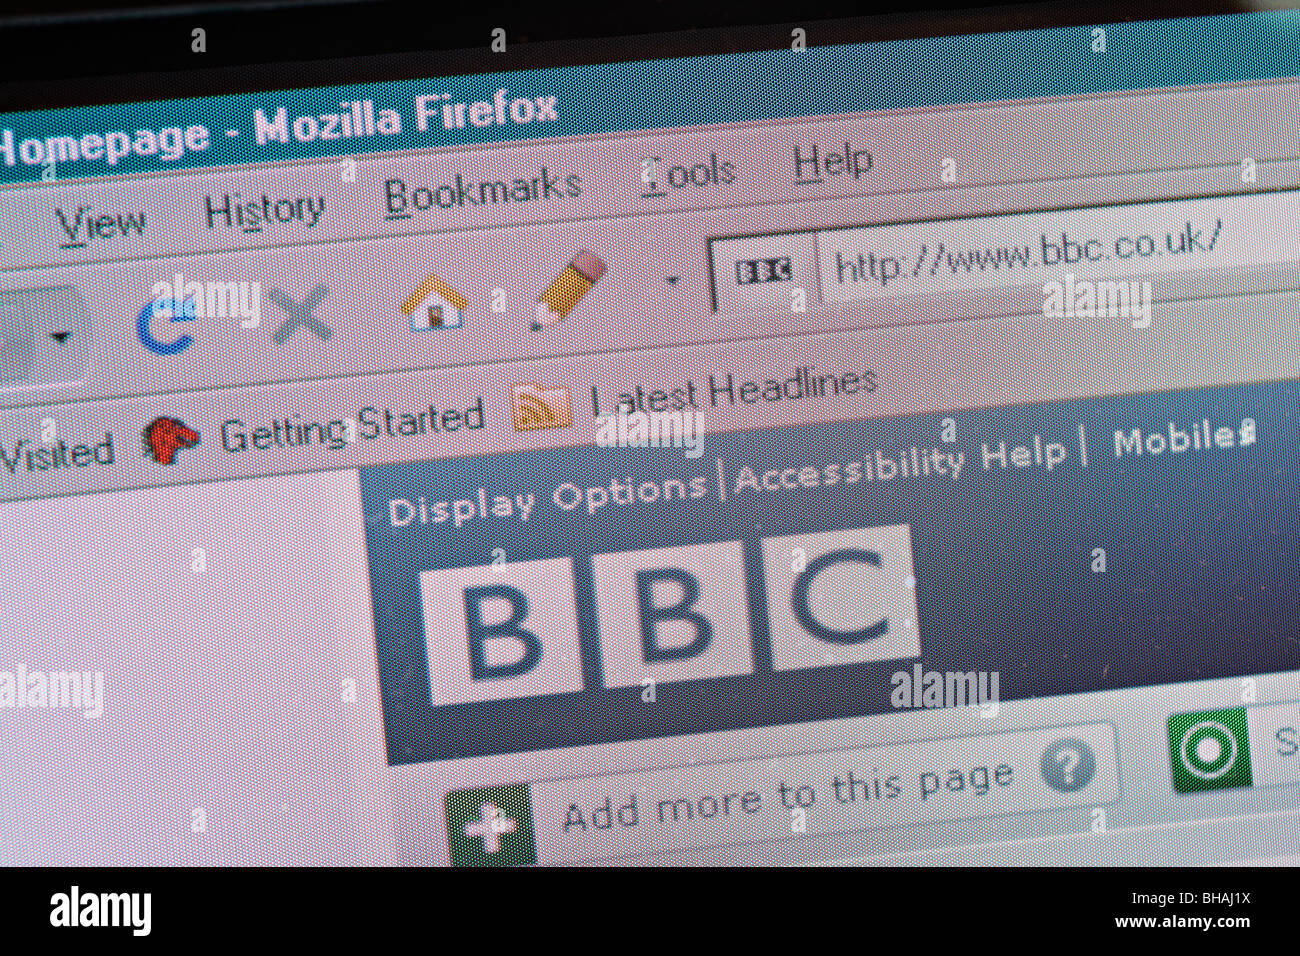 BBC homepage in Mozilla Firefox - screenshot - Stock Image